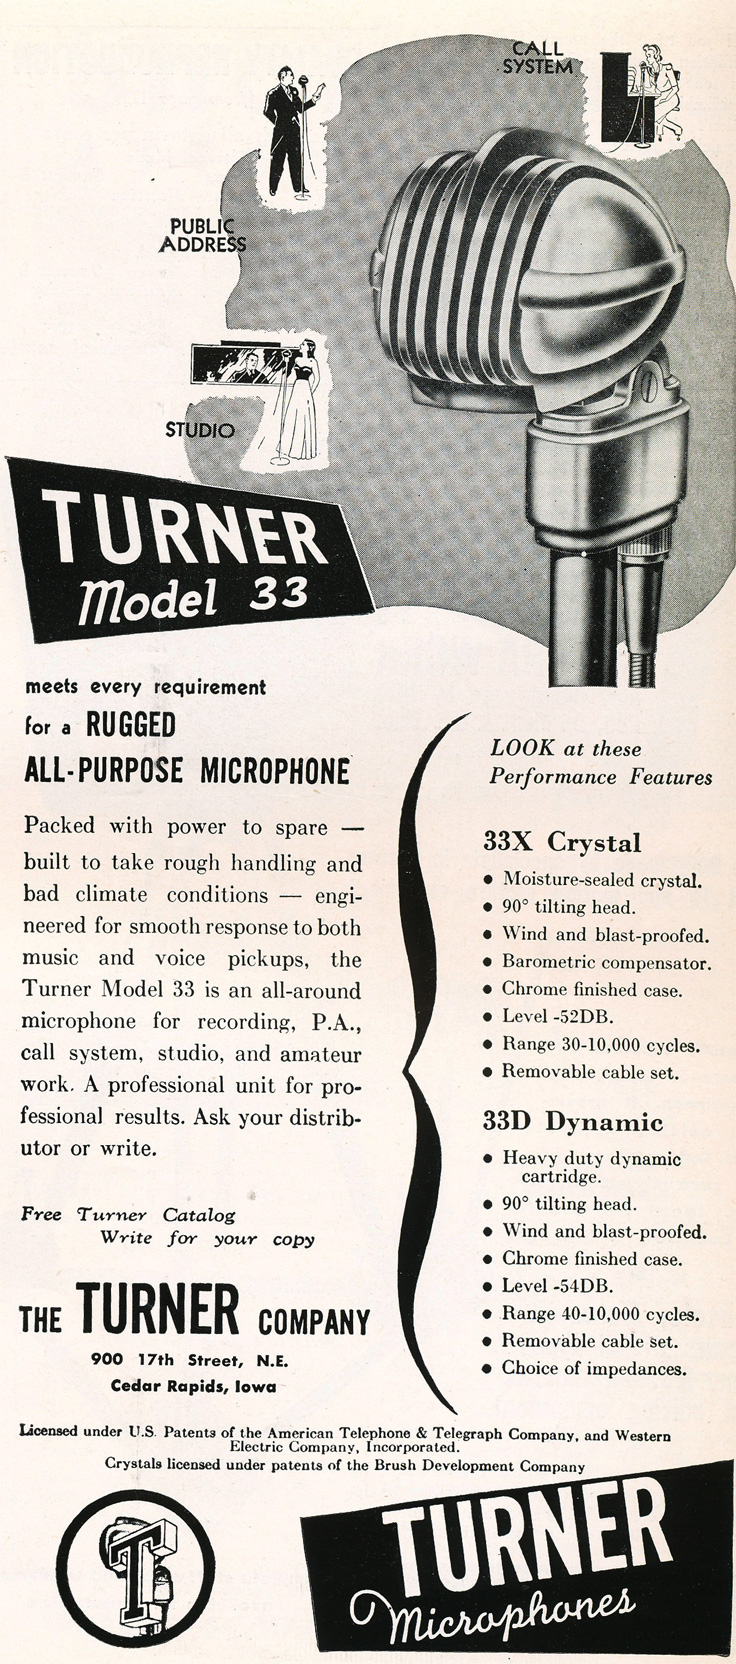 949 Turner 33 microphones in Reel2ReelTexas.com's vintage recording collection